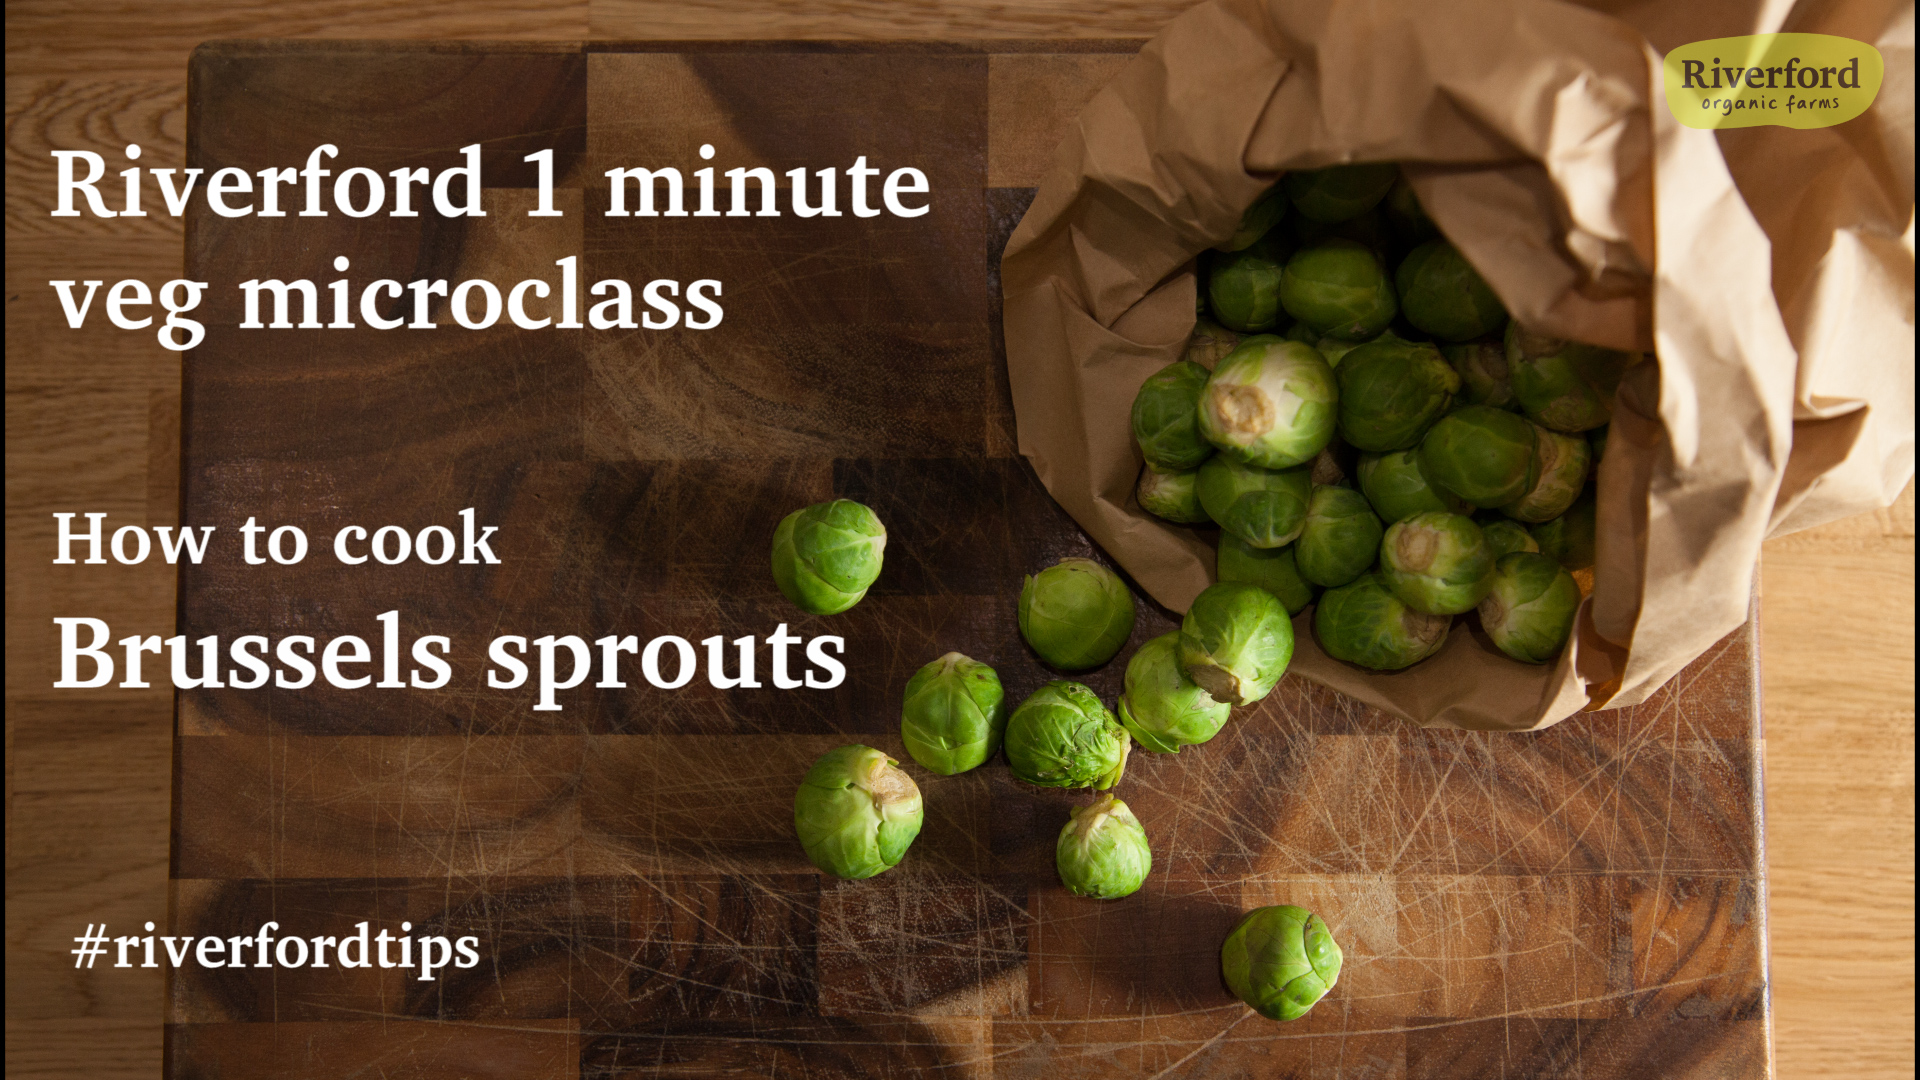 Brussels sprouts video thumbnail